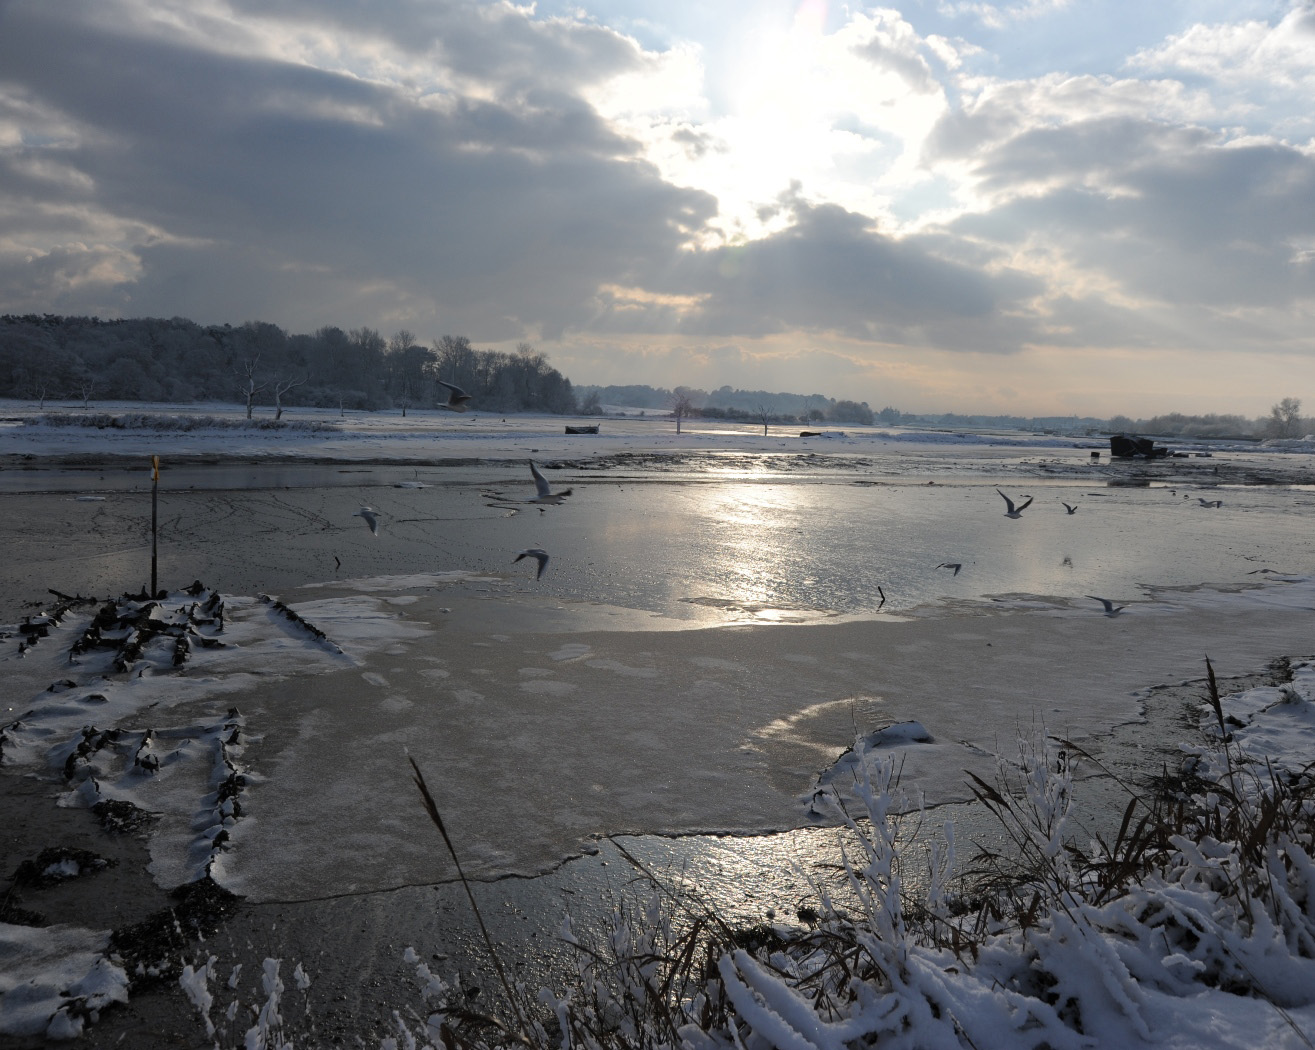 The Deben in Winter